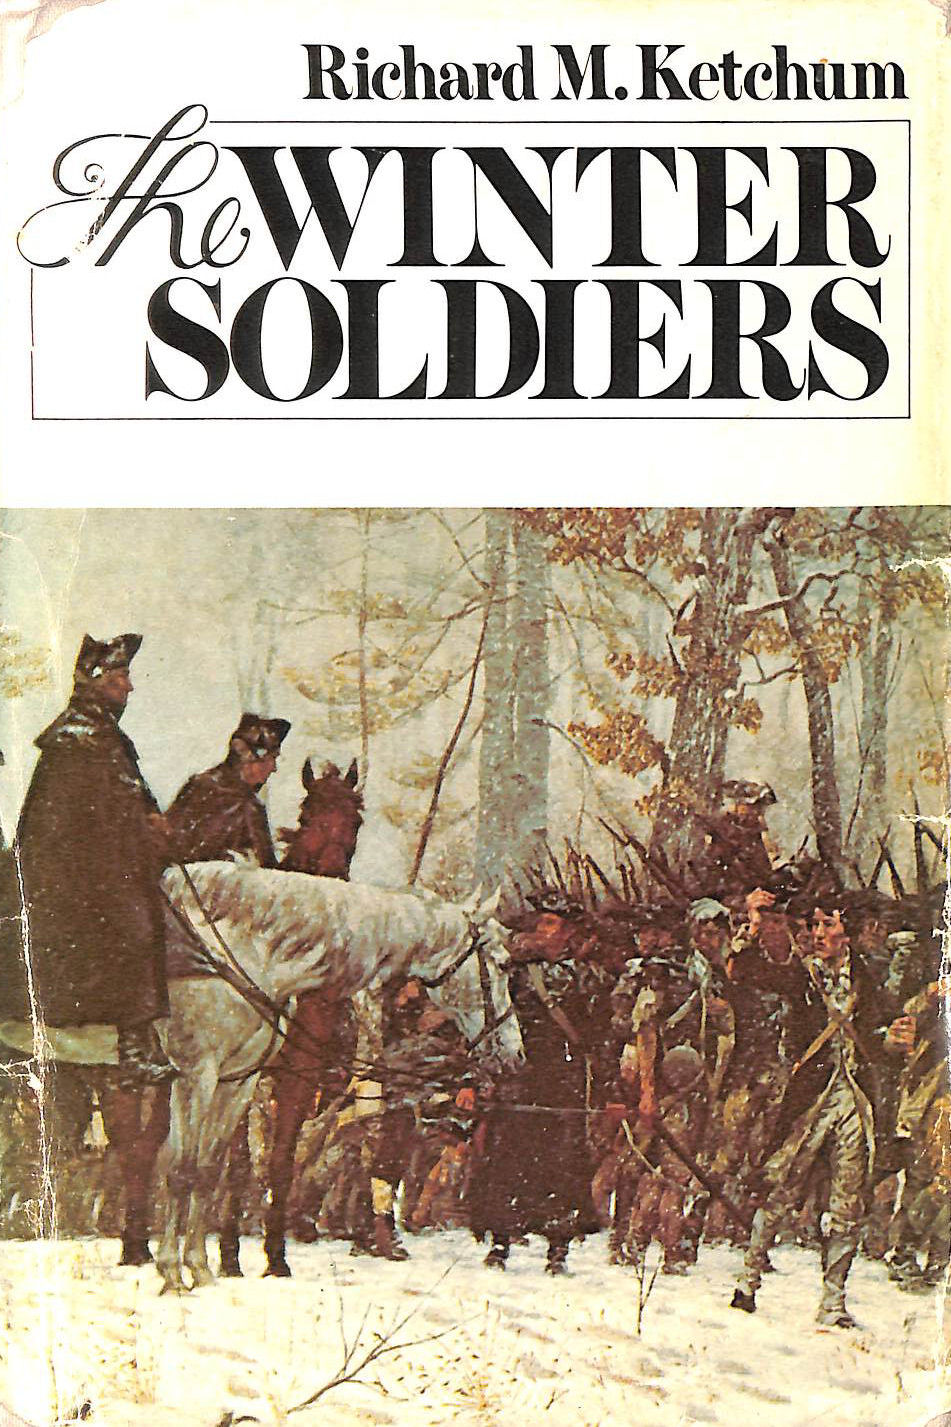 Image for The winter soldiers (The Crossroads of world history series) by Richard M Ketchum (1973-08-01)